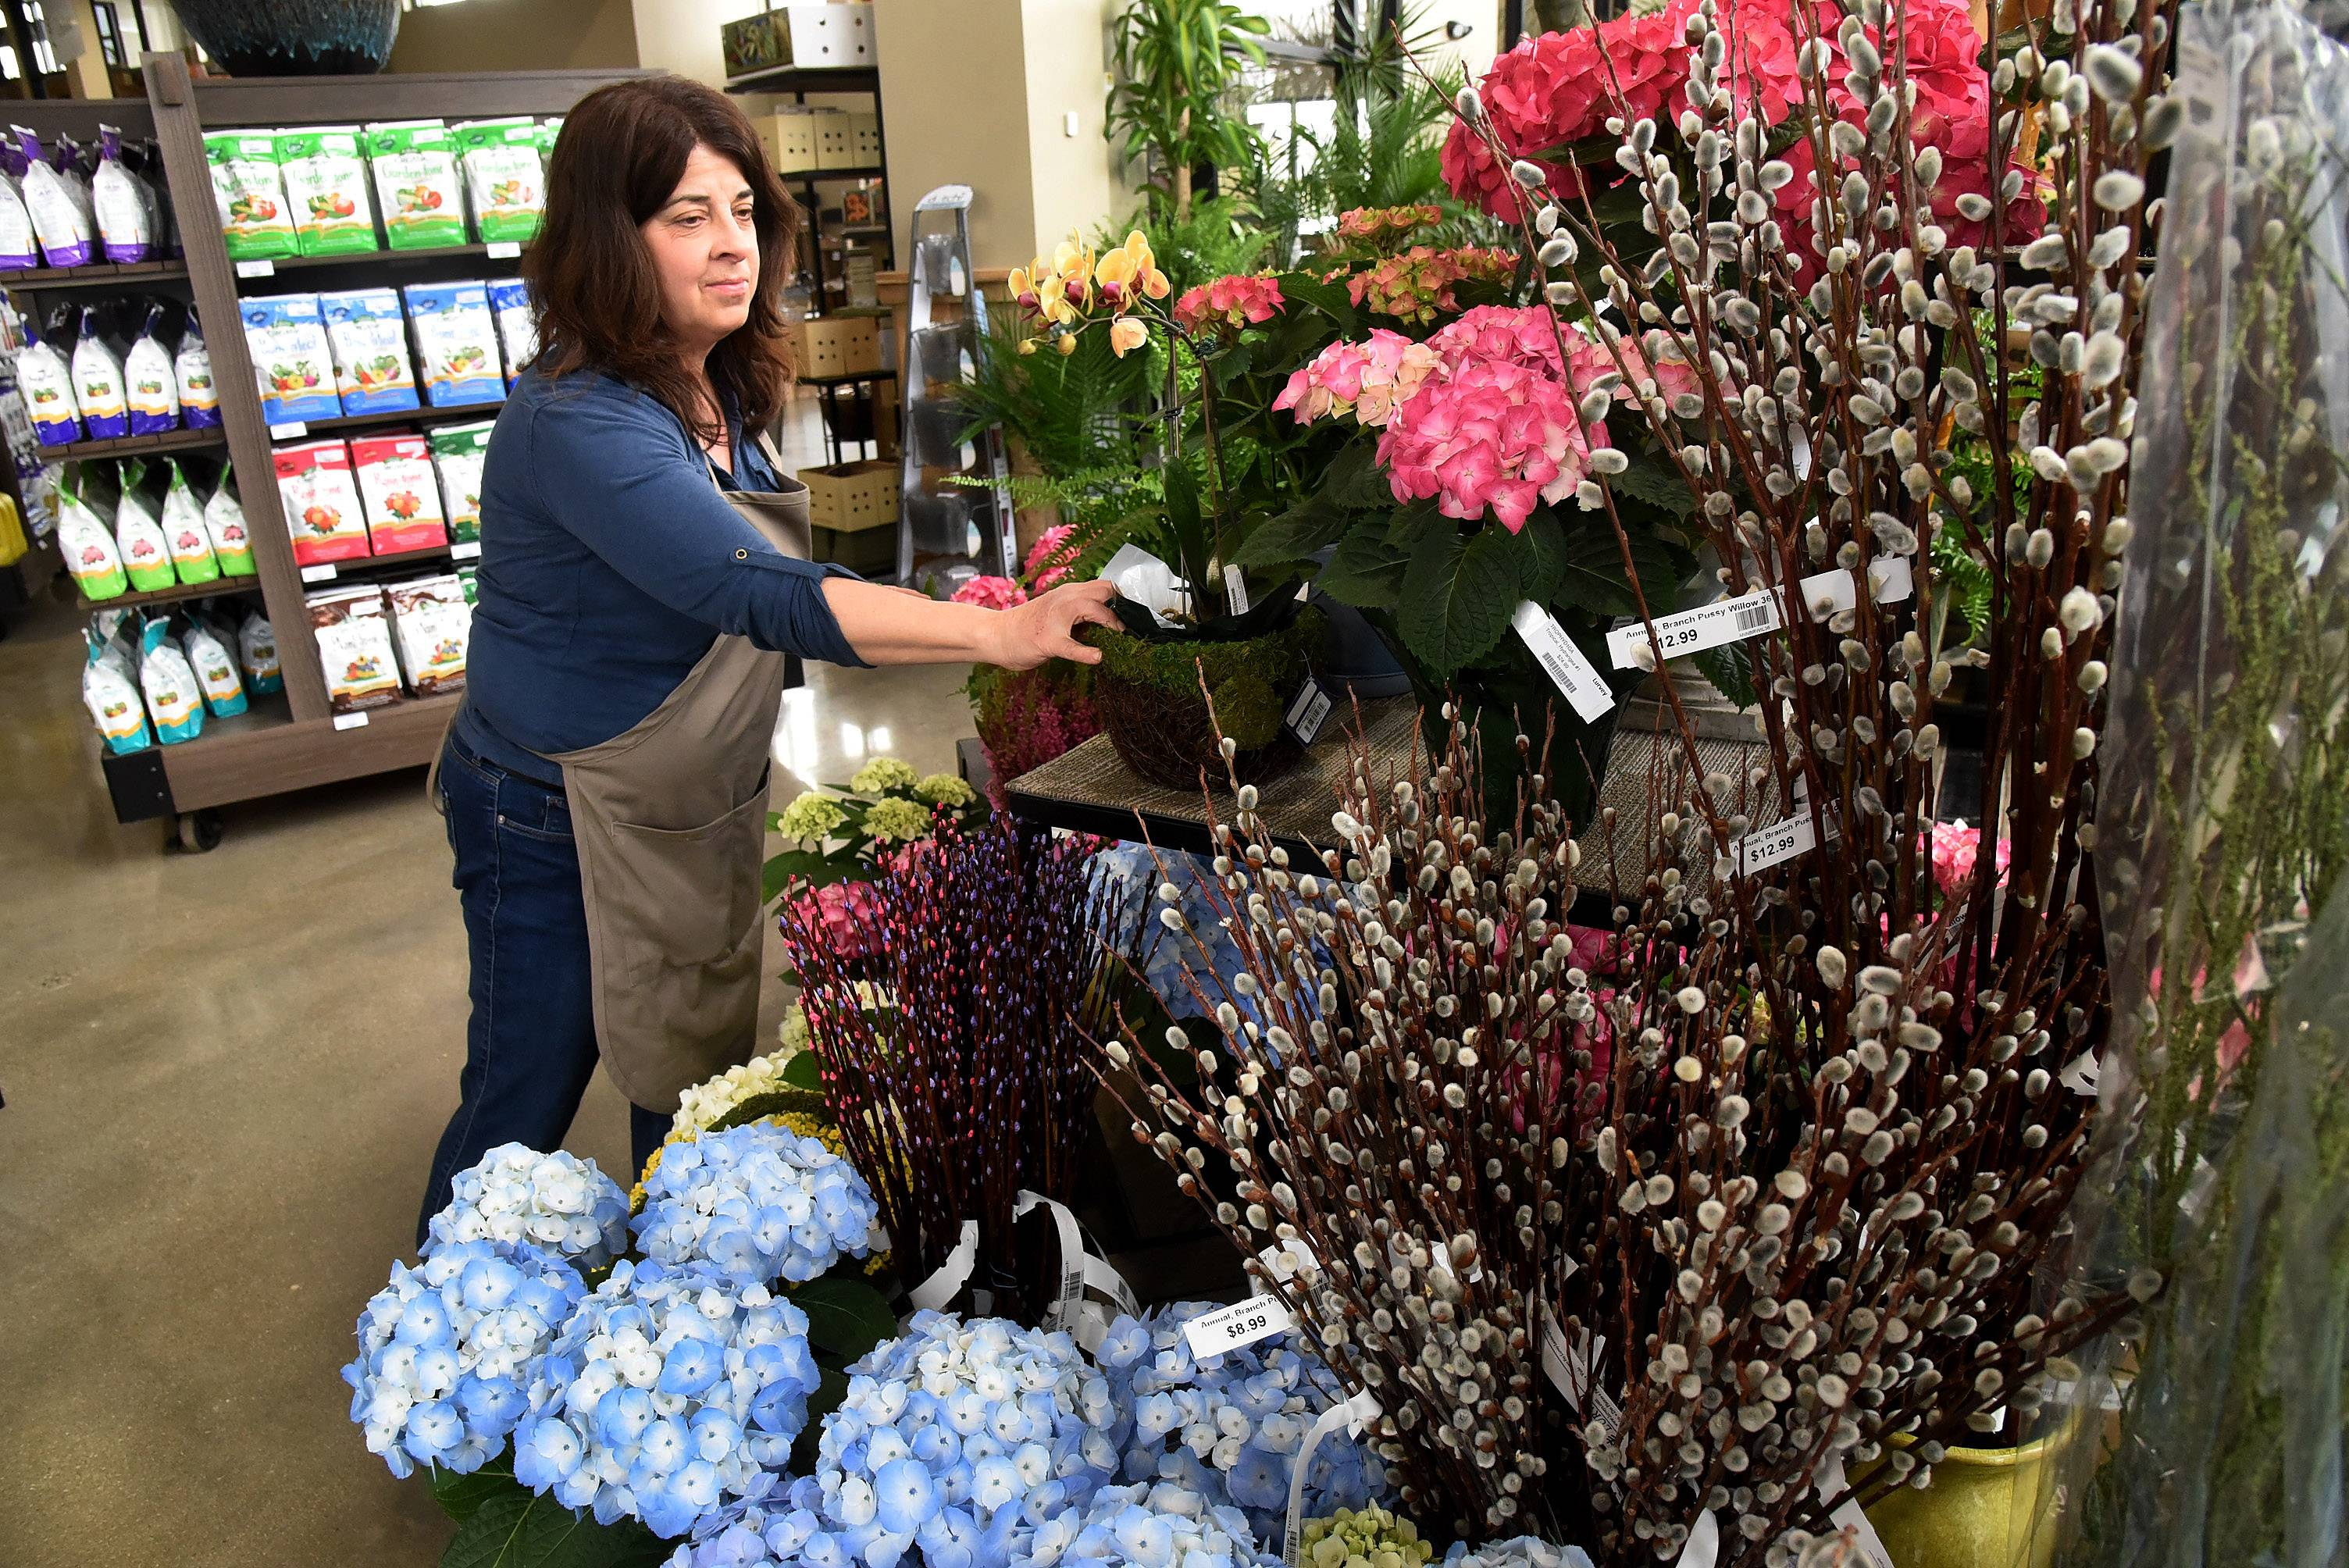 Judy Ronan works on some indoor blooming plants in the conservatory area of the new Lurvey Landscape Supply and Plant Center in Des Plaines.